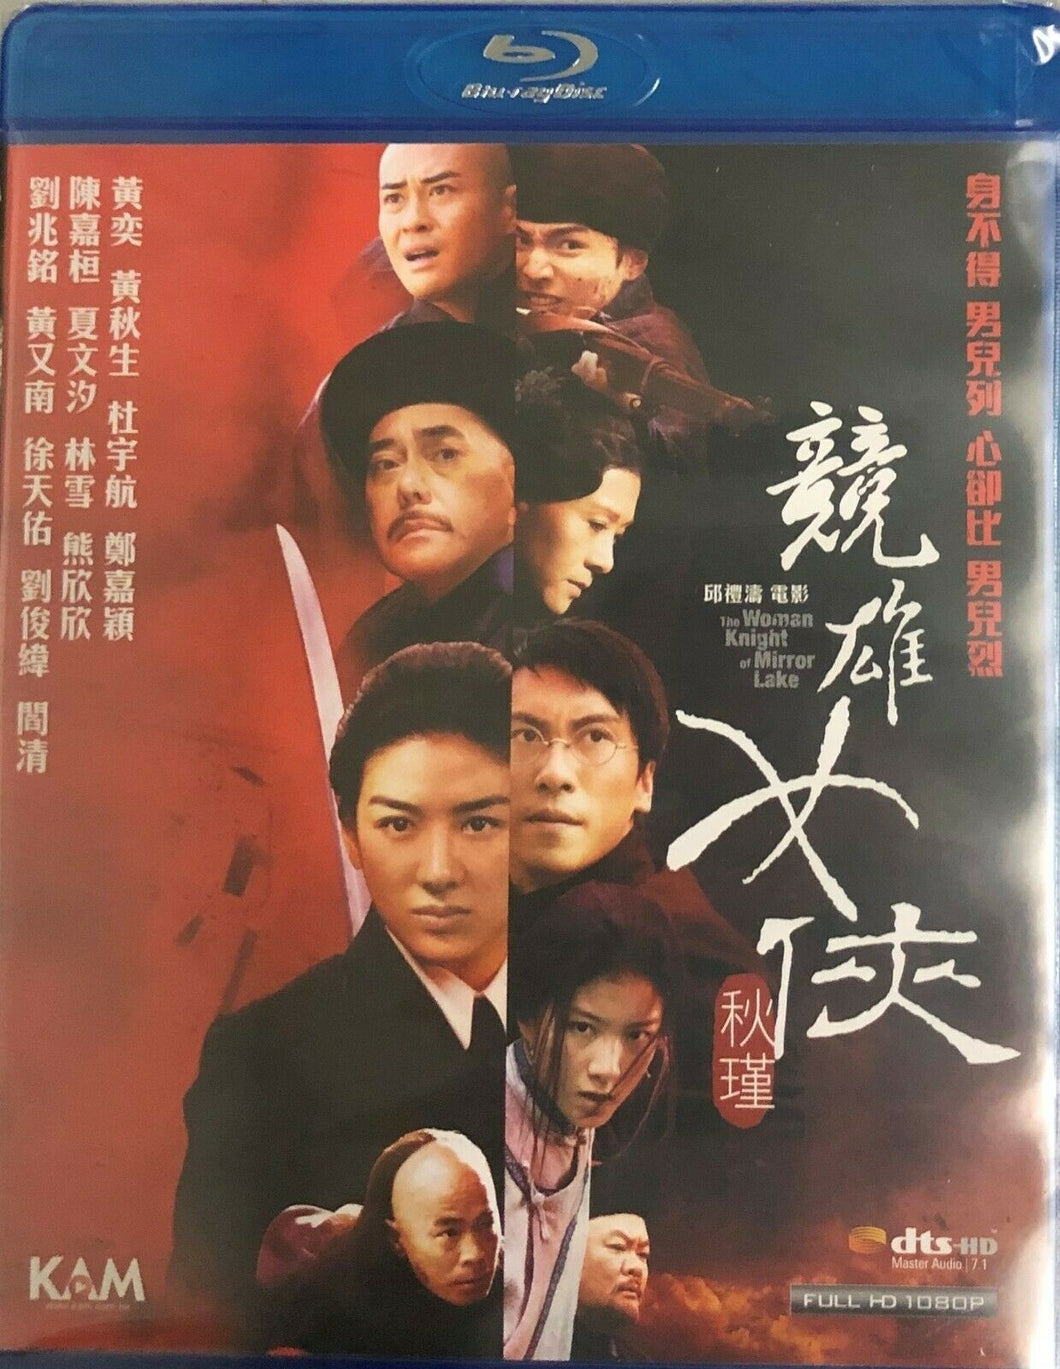 The Woman Knight of Mirror Lake 競雄女俠秋瑾 2011 (Hong Kong Movie) BLU-RAY with English Sub (Region A)